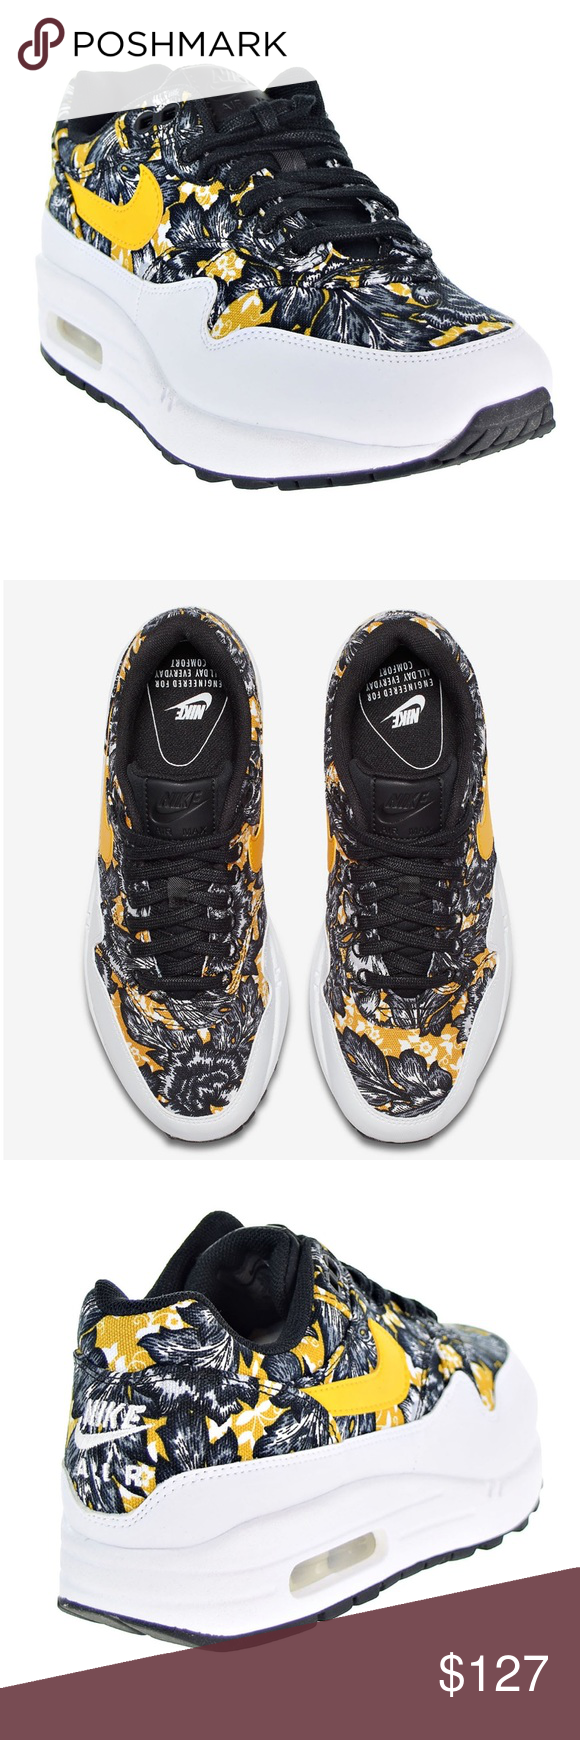 sports shoes ab8f8 52f11 Nike Air Max 1 QS! 😍 Hot Pattern! Fabulous, cool and unique! 😎😍 Nike Air  Max 1 QS. Color  White University Gold-Black. Floral Print. Women s size 10.